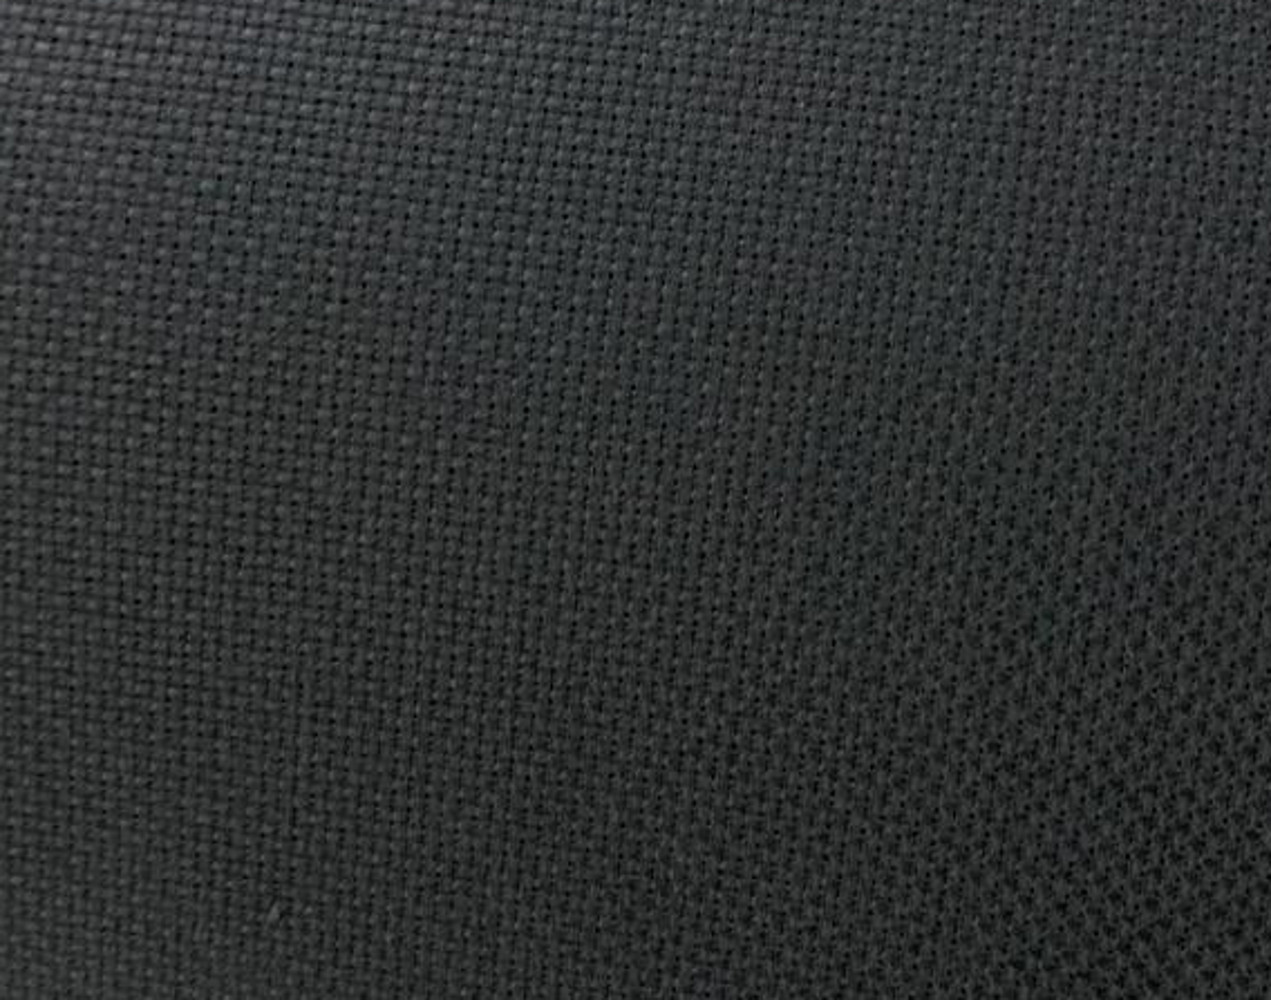 "Black Aida Cloth - 14 Count 60"" Wide By The Yard"